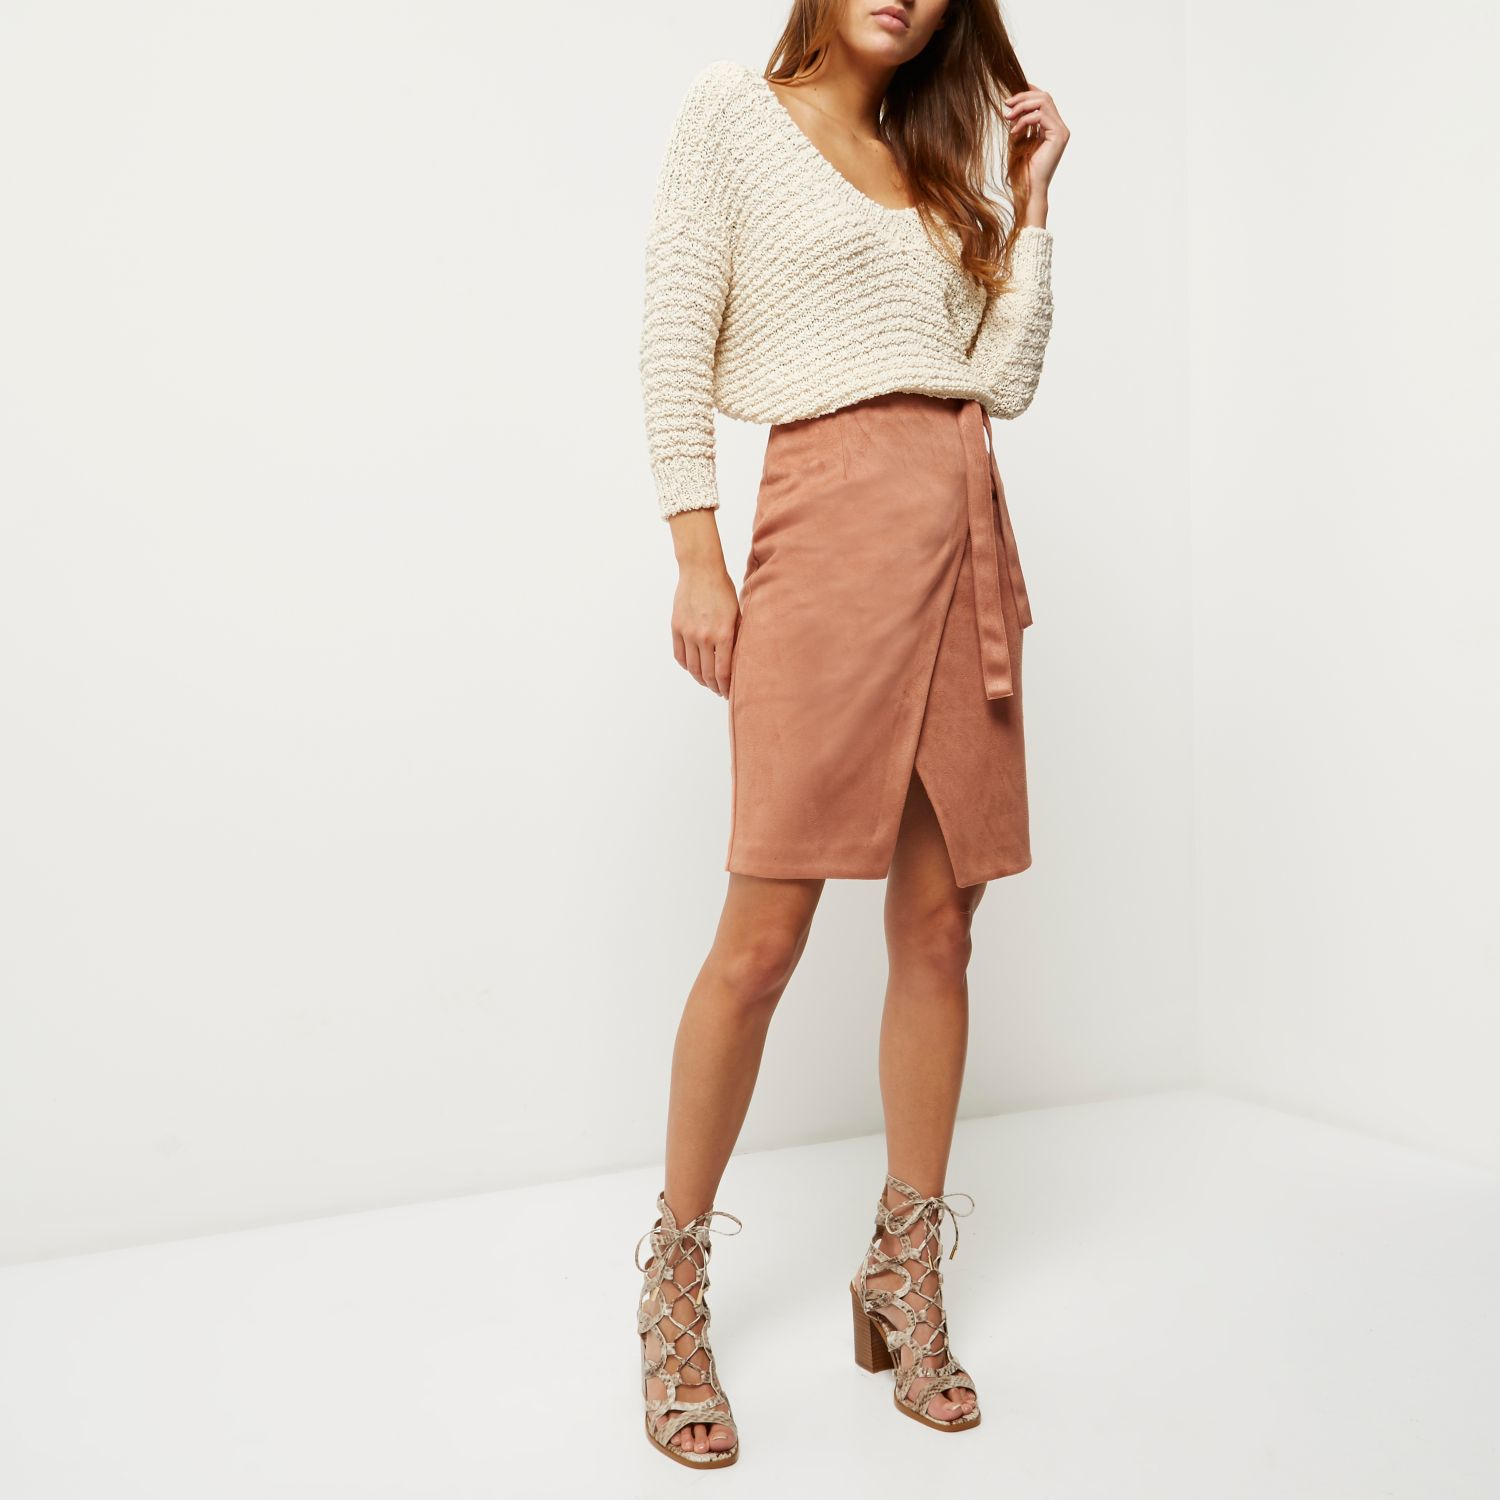 River island Brown Faux Suede Wrap Skirt in Brown | Lyst